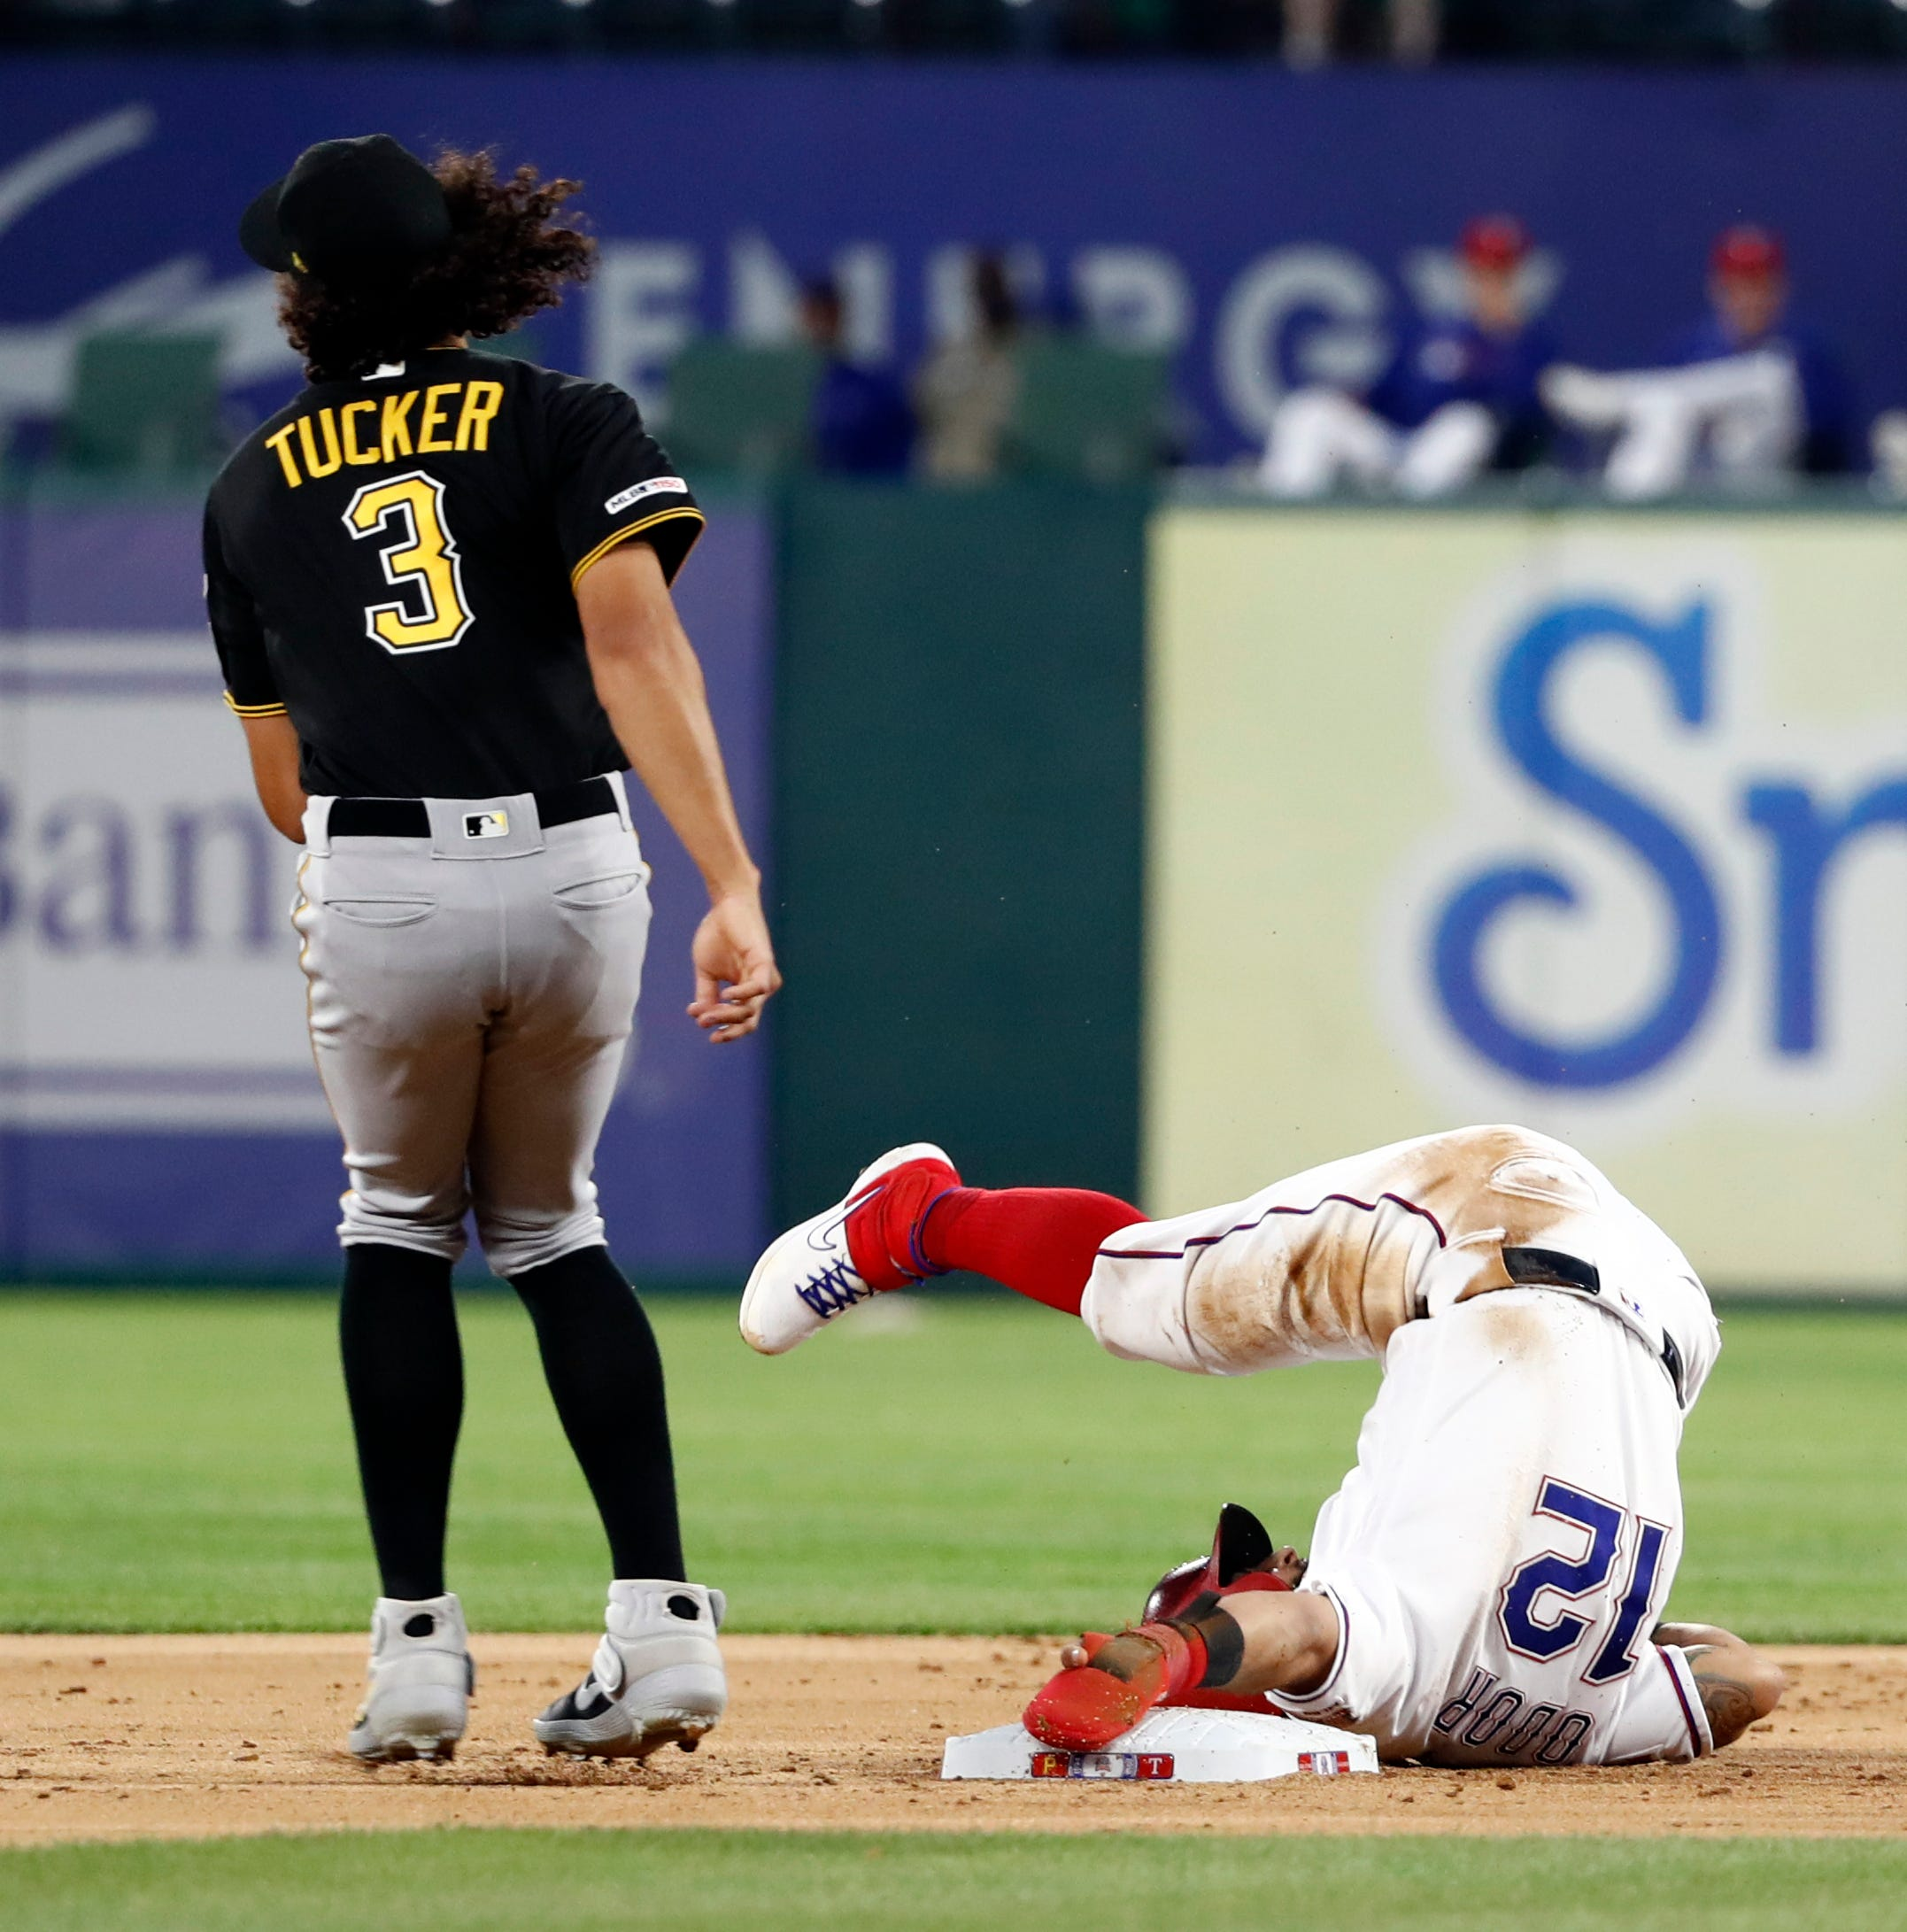 Pirates end 8-game skid with 2 11th-inning HRs to beat Texas